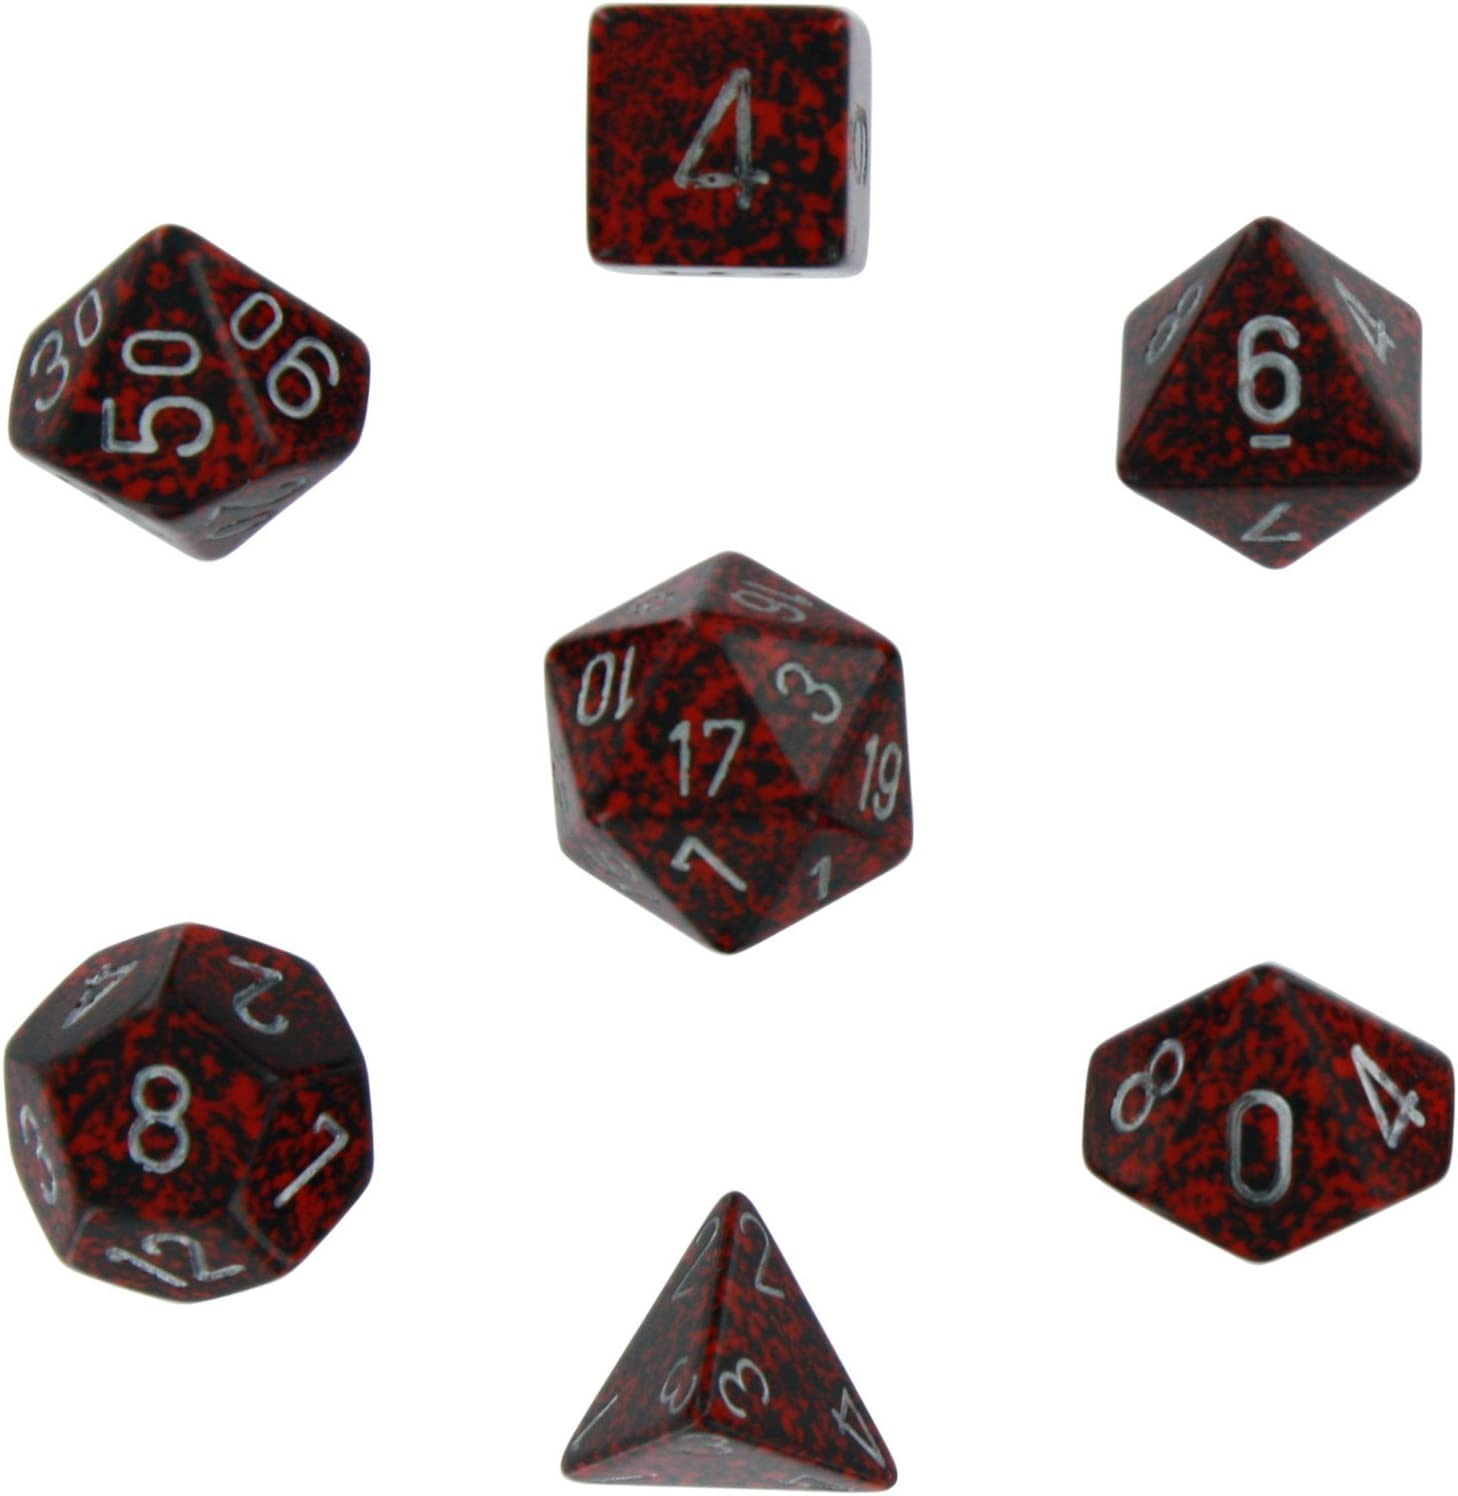 Chessex Dice Polyhedral 7-Die Set - Speckled Silver Volcano